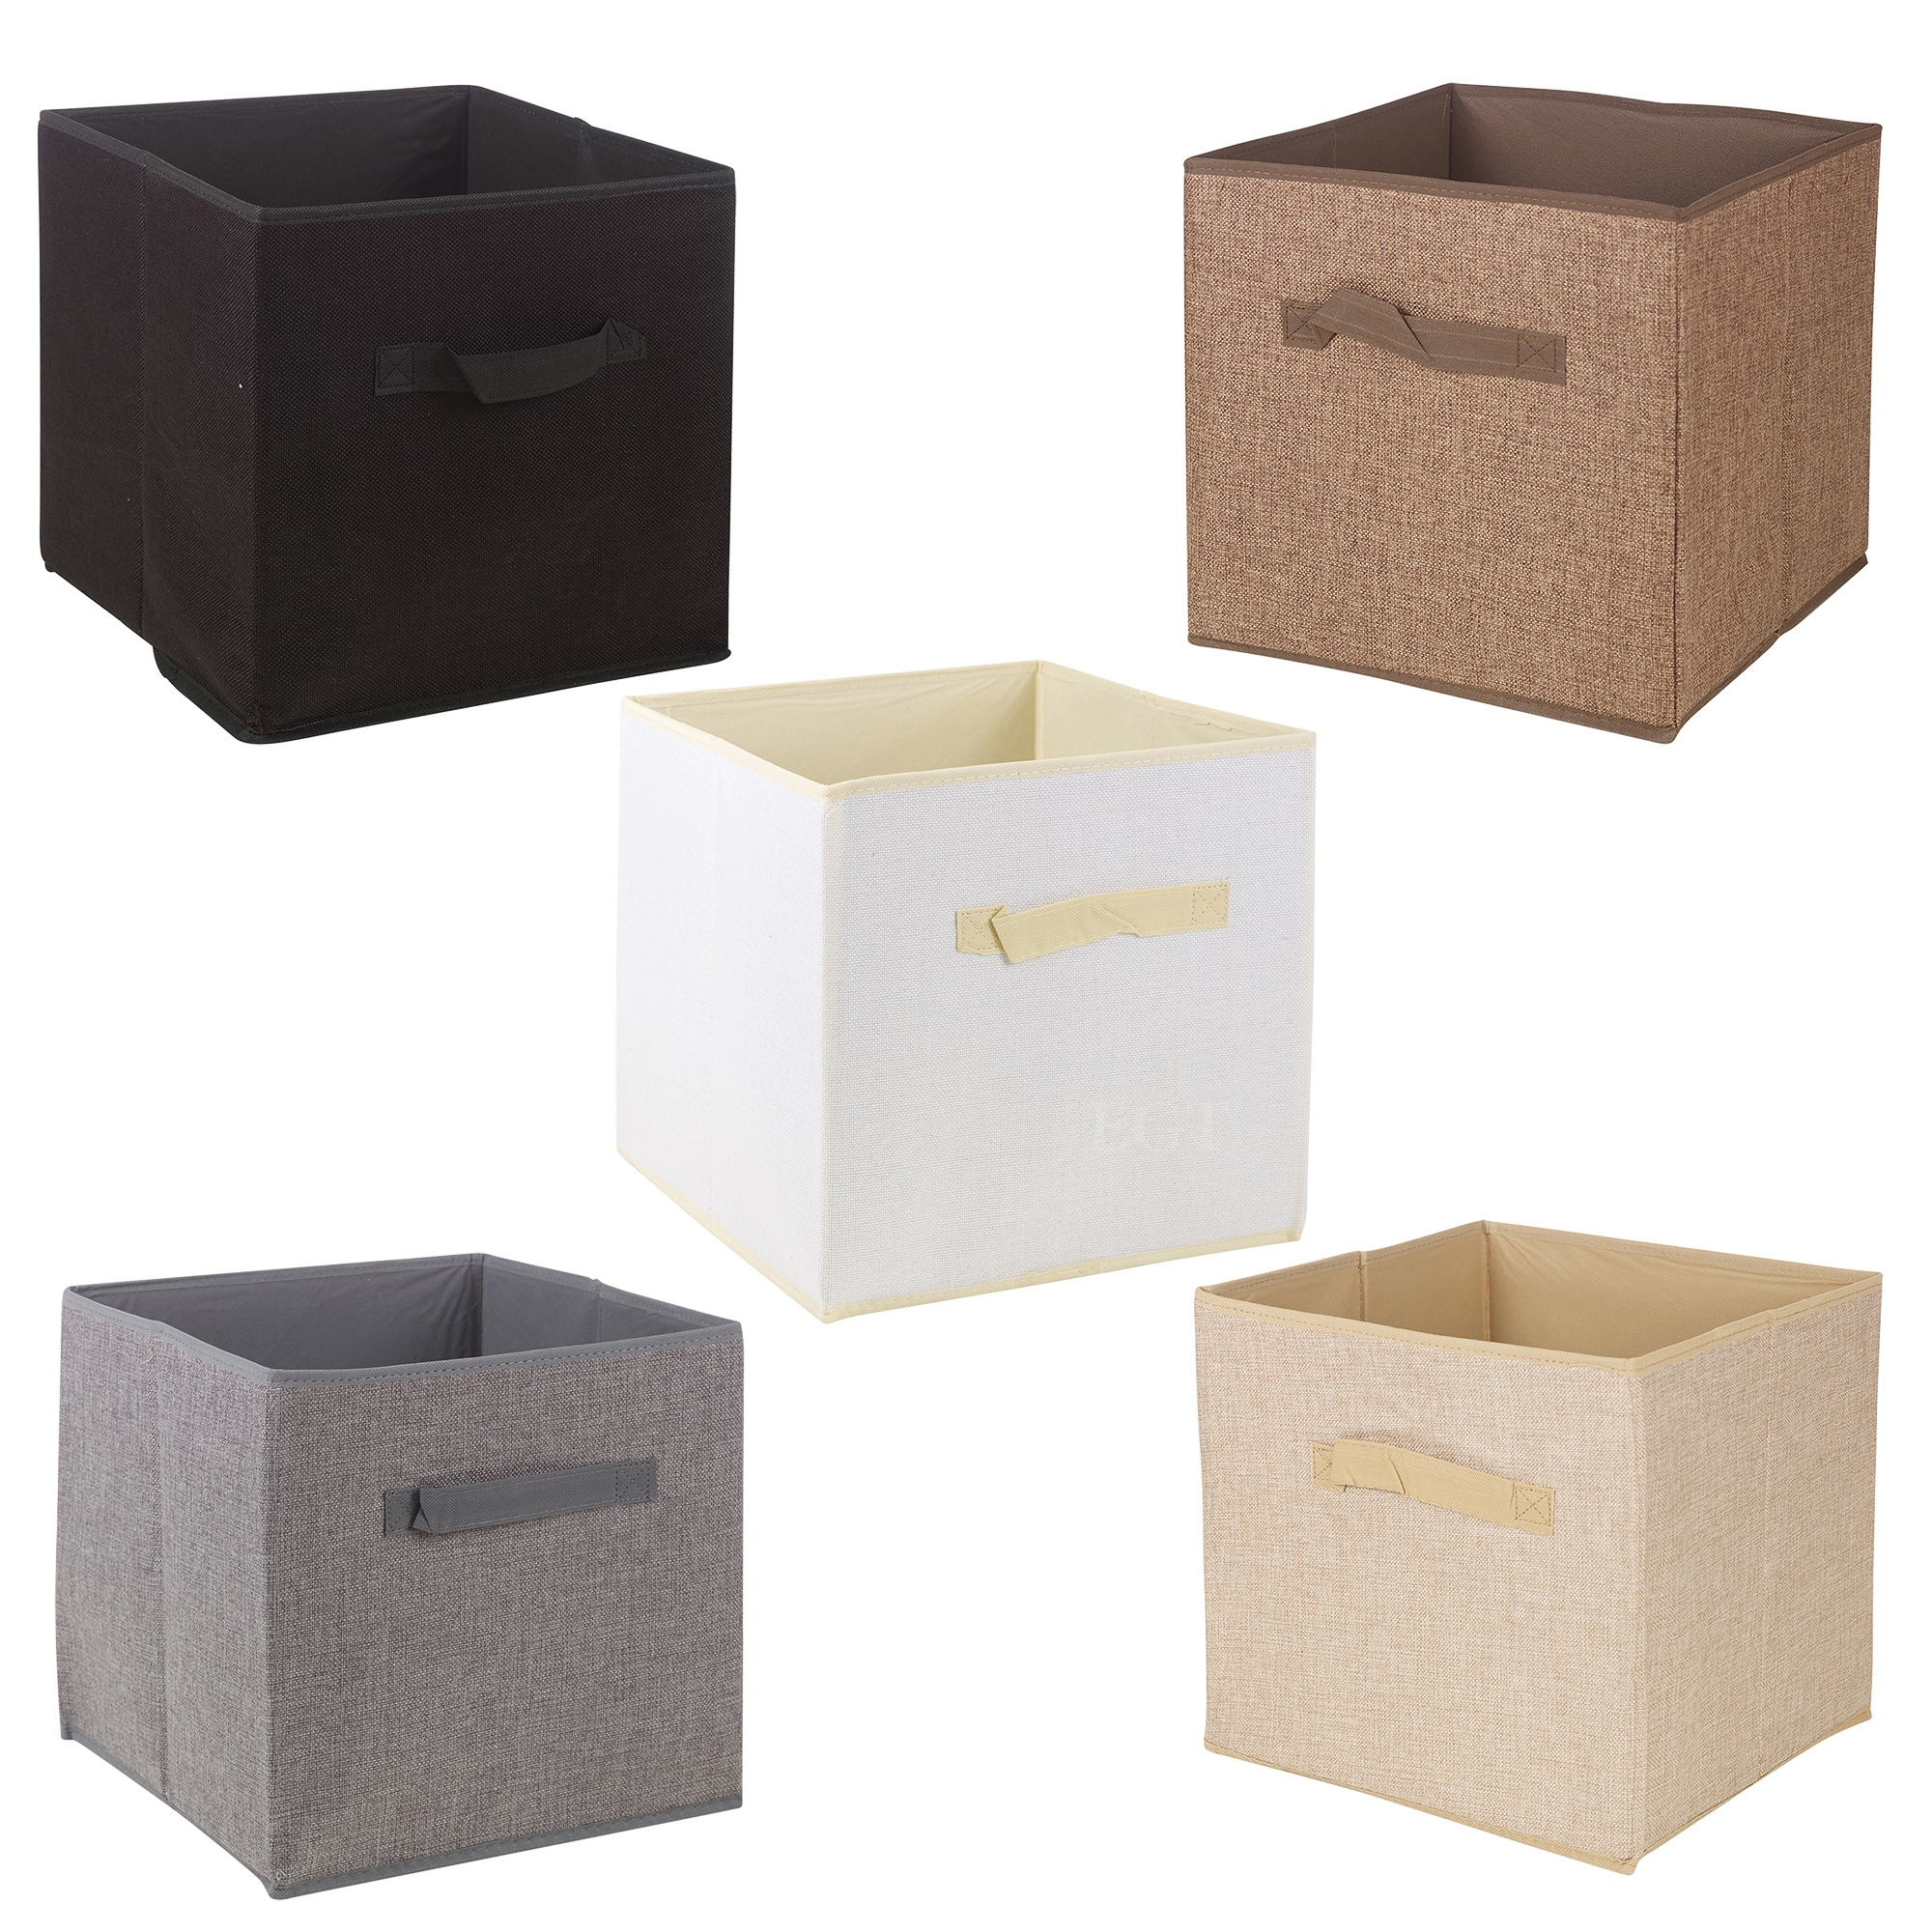 collapsible storage boxes cube woven kids toys carry handles bits bobs organise ebay. Black Bedroom Furniture Sets. Home Design Ideas